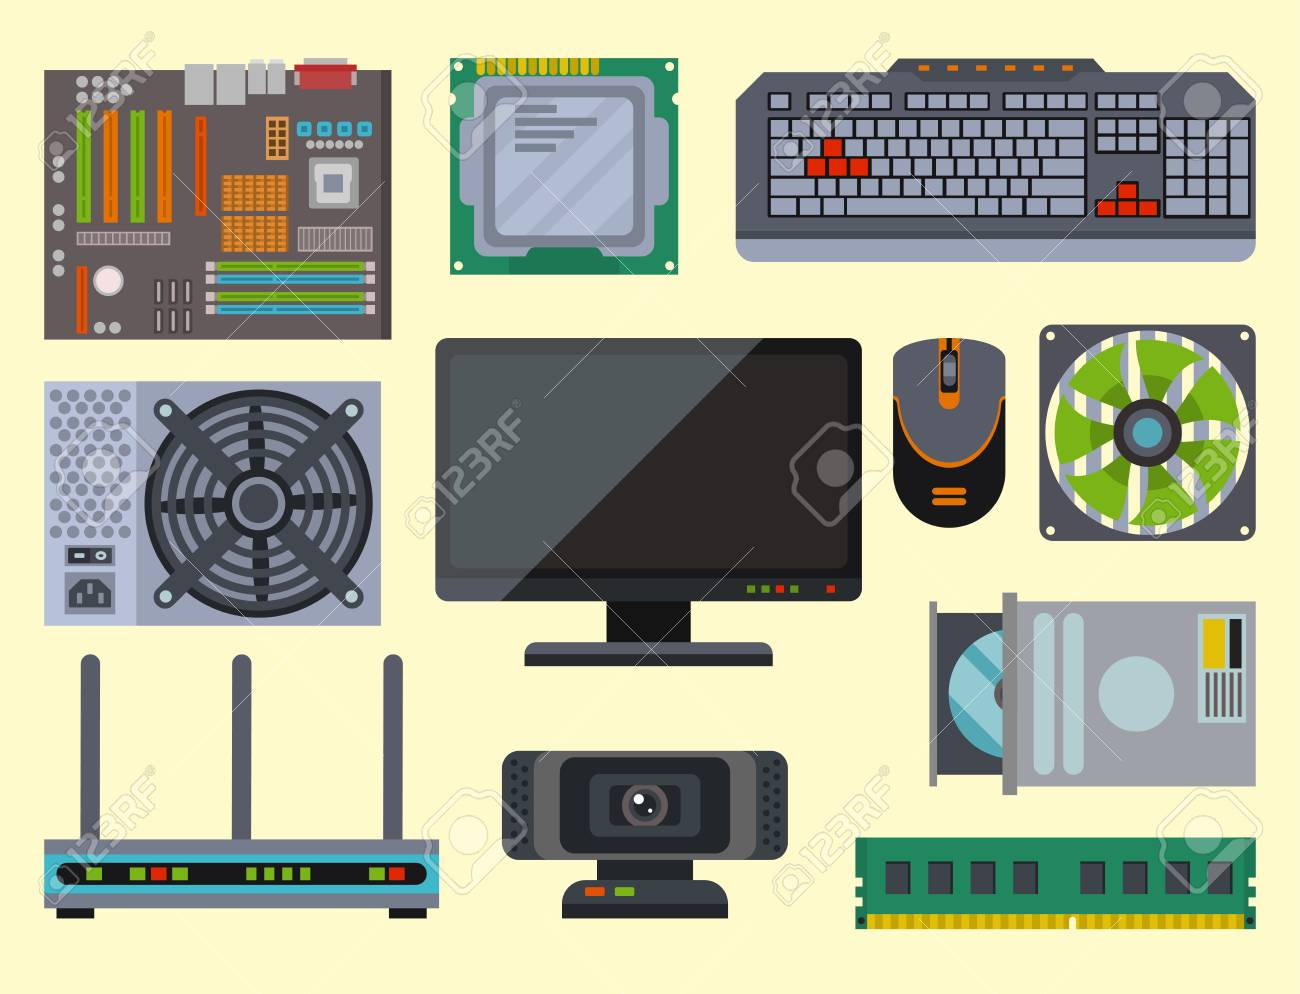 Computer Parts Network Component Accessories Various Electronics Royalty Free Cliparts Vectors And Stock Illustration Image 96892587